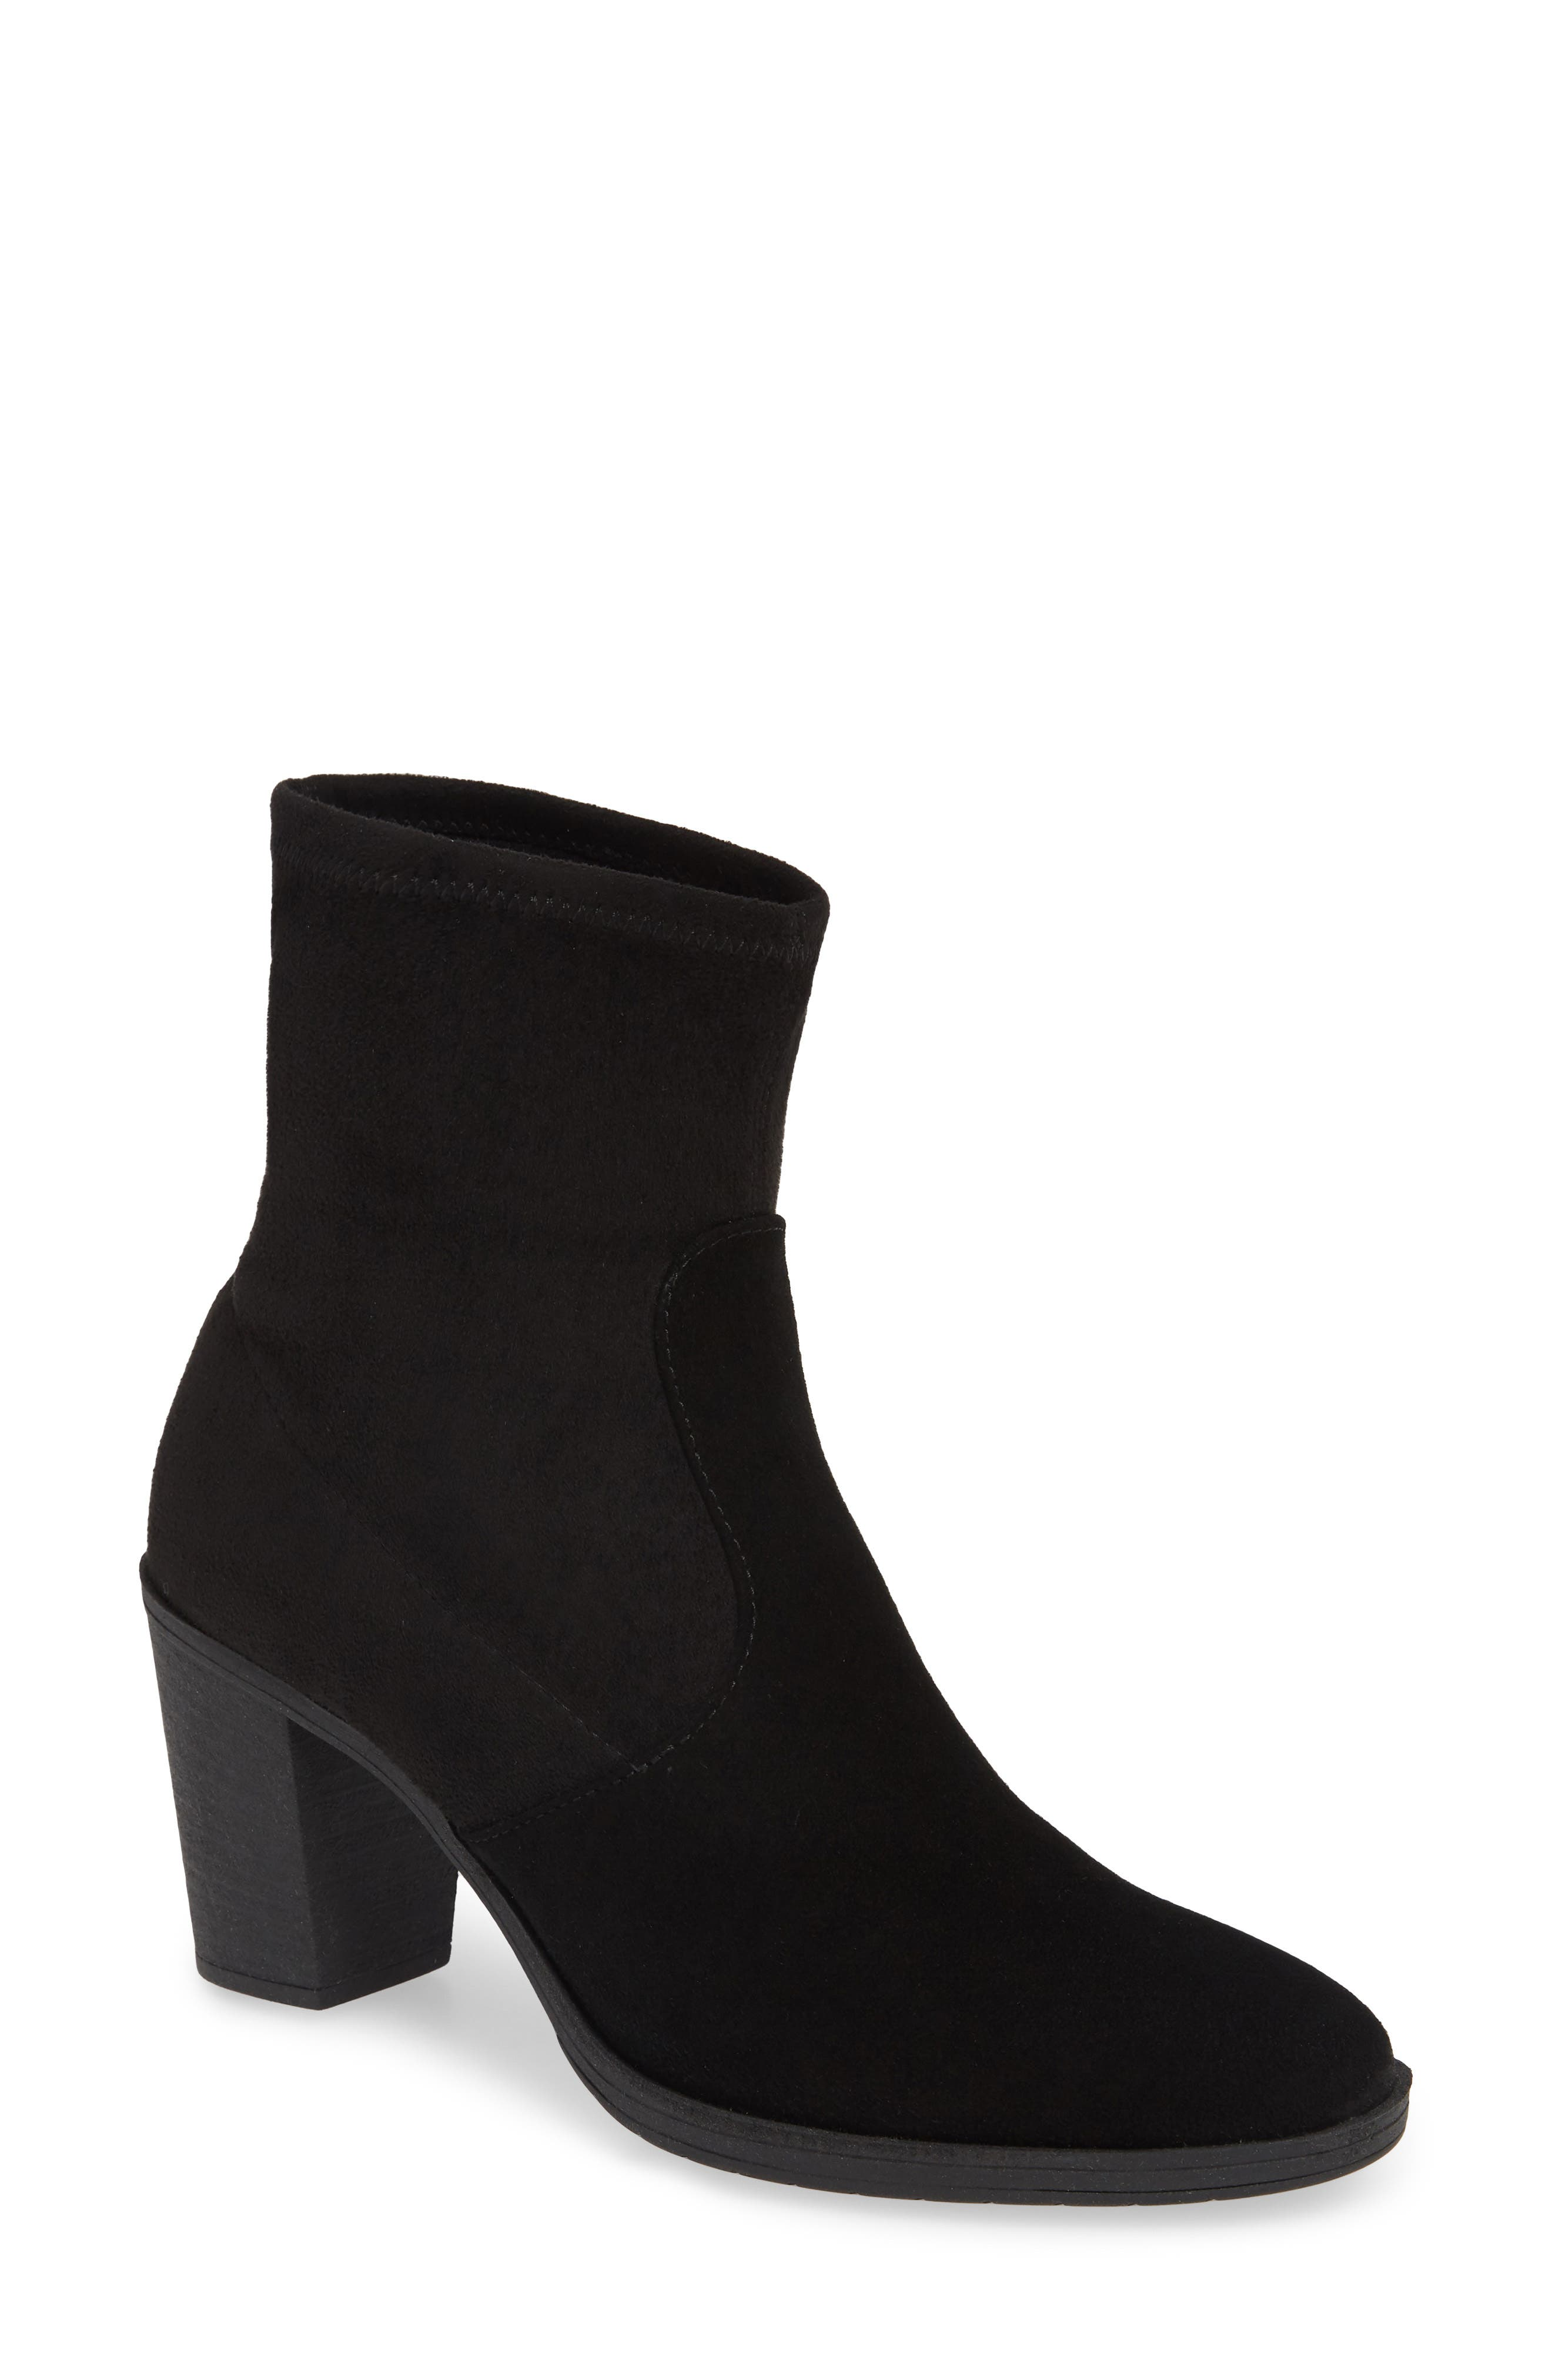 On The Rocks Bootie,                             Main thumbnail 1, color,                             BLACK SUEDE